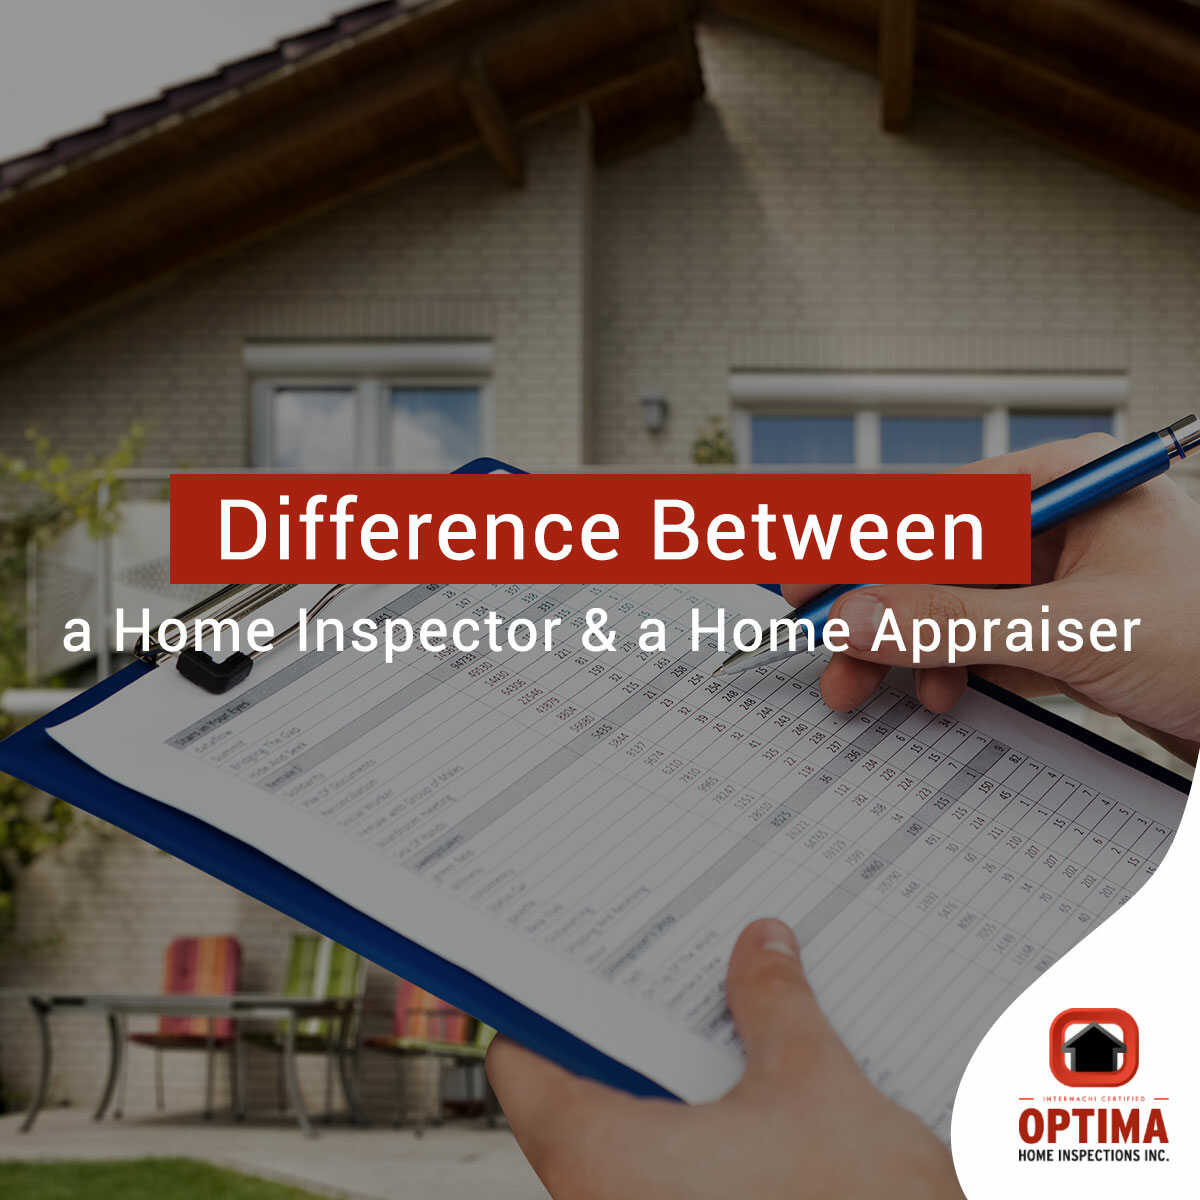 Difference Between a Home Inspector & a Home Appraiser